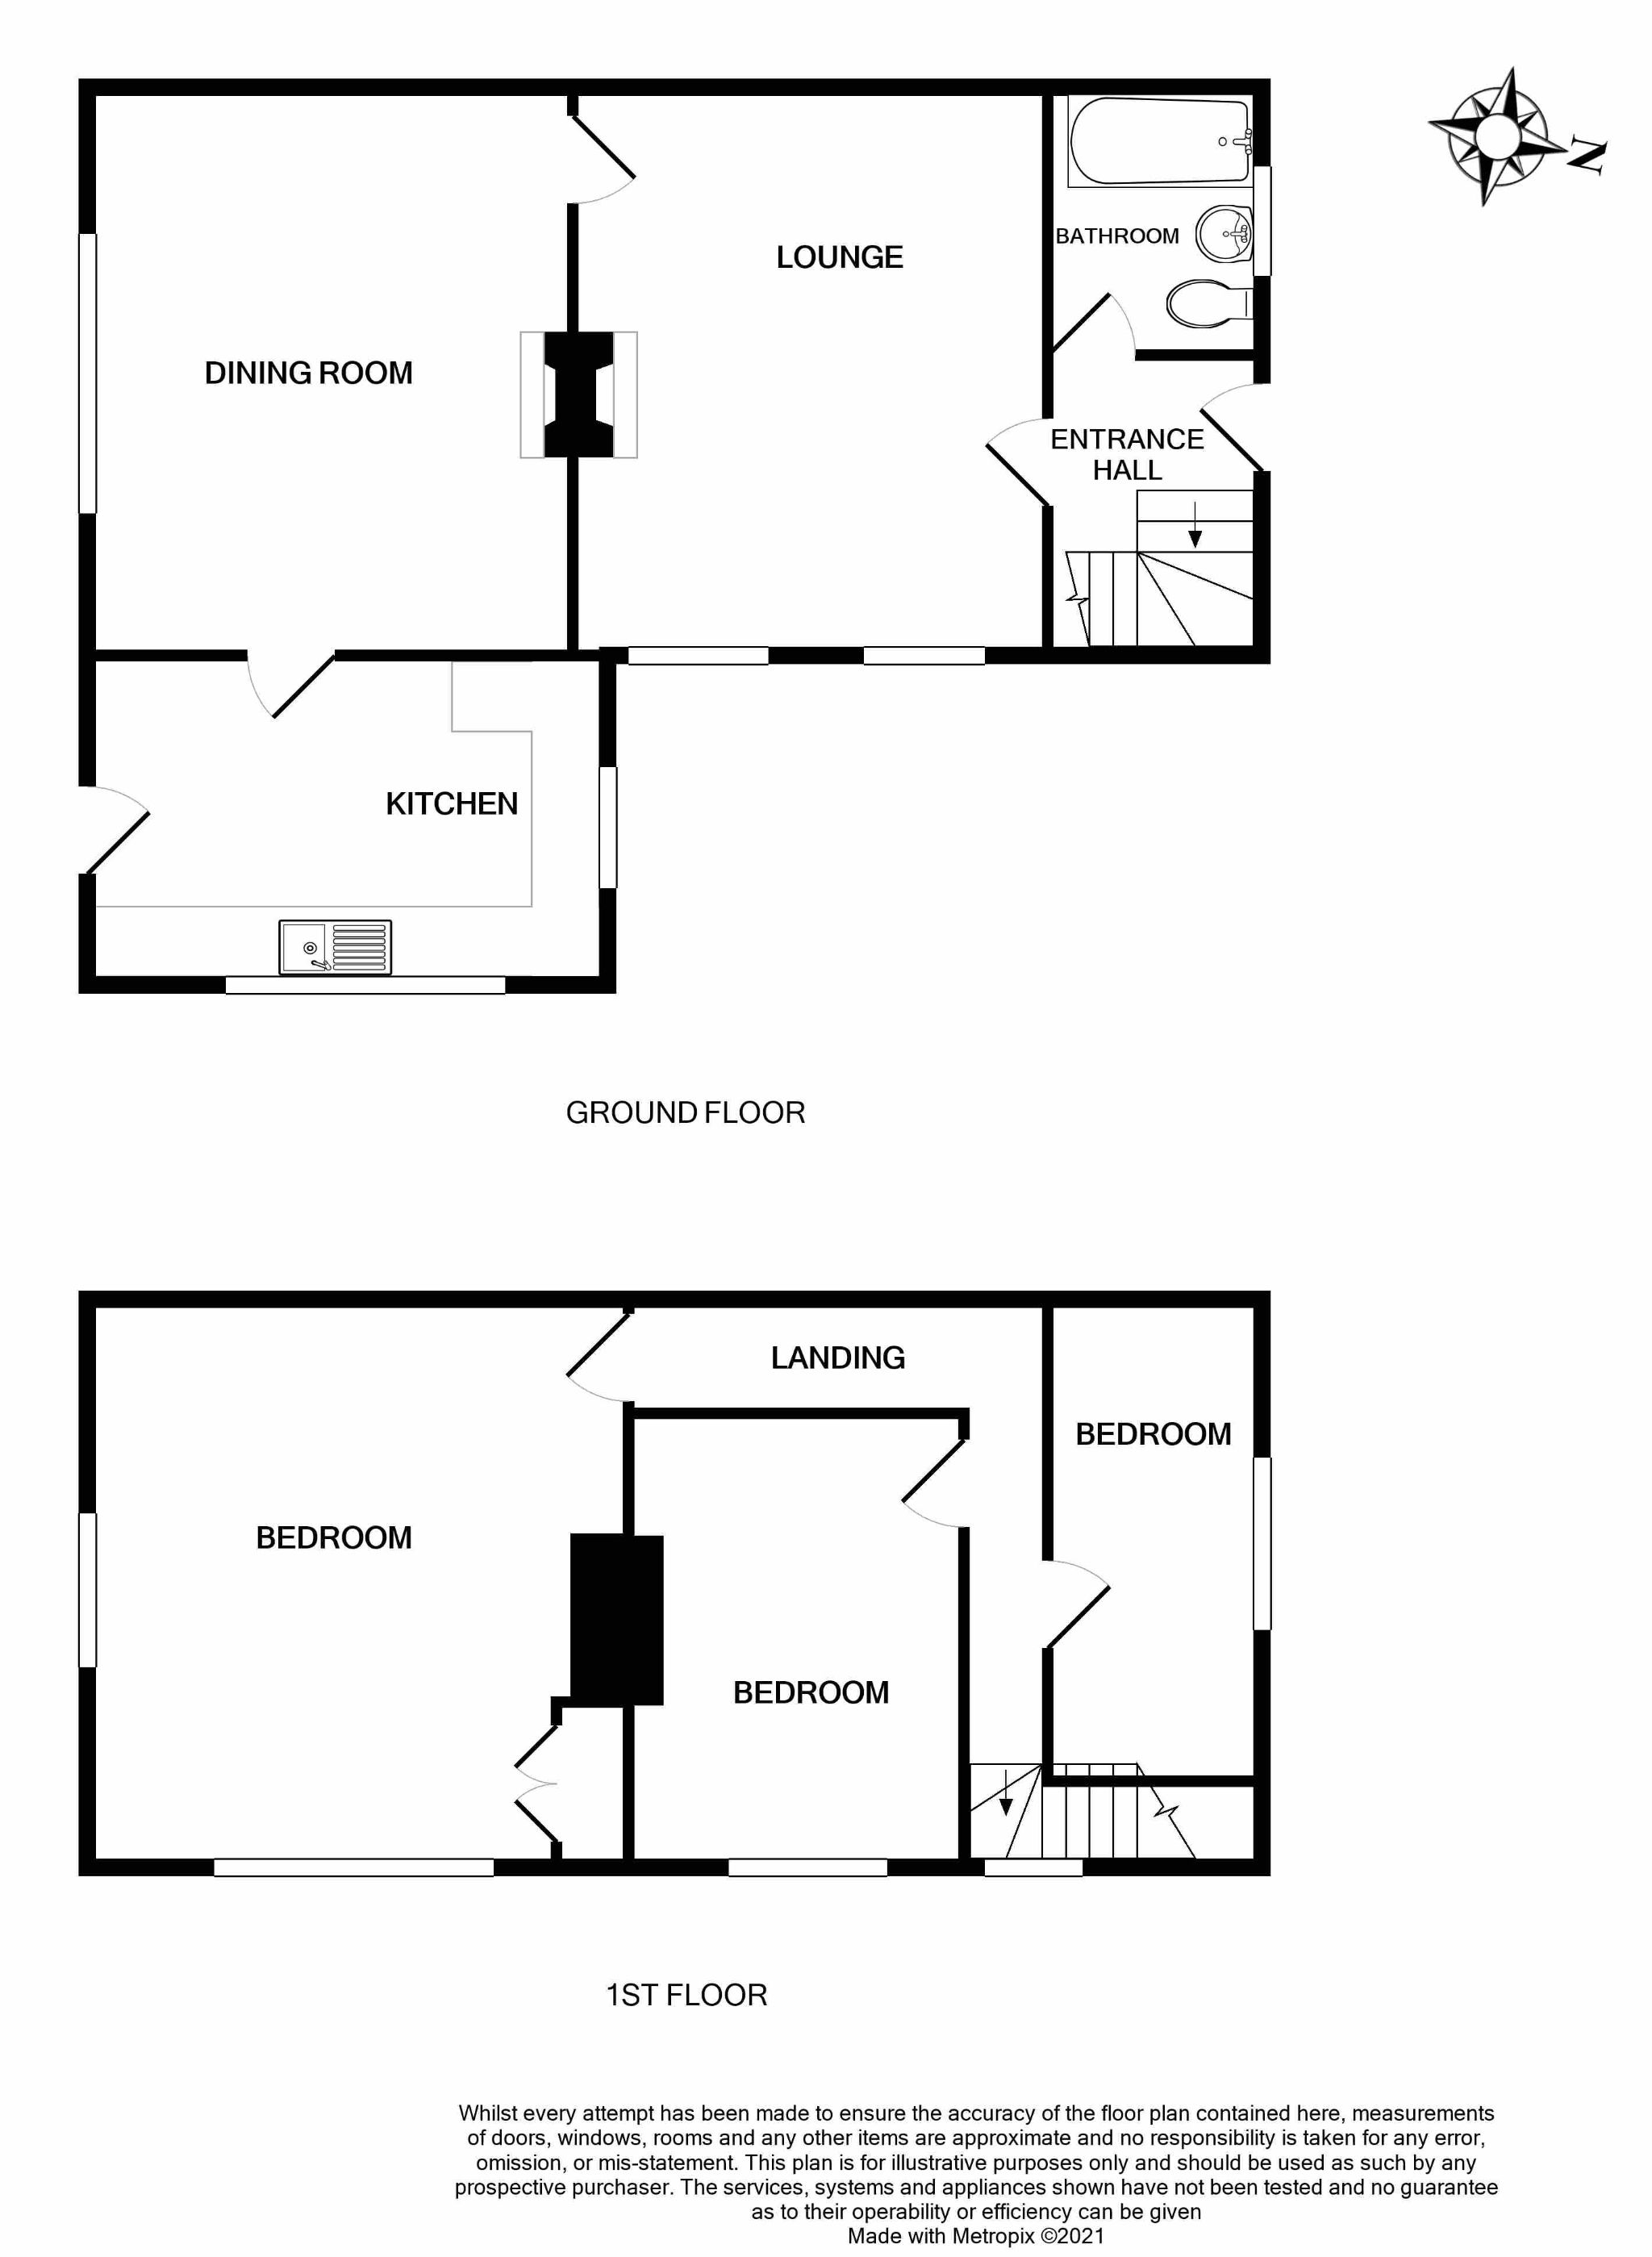 3 bedroom cottage house SSTC in Brighouse - Floorplan 1.